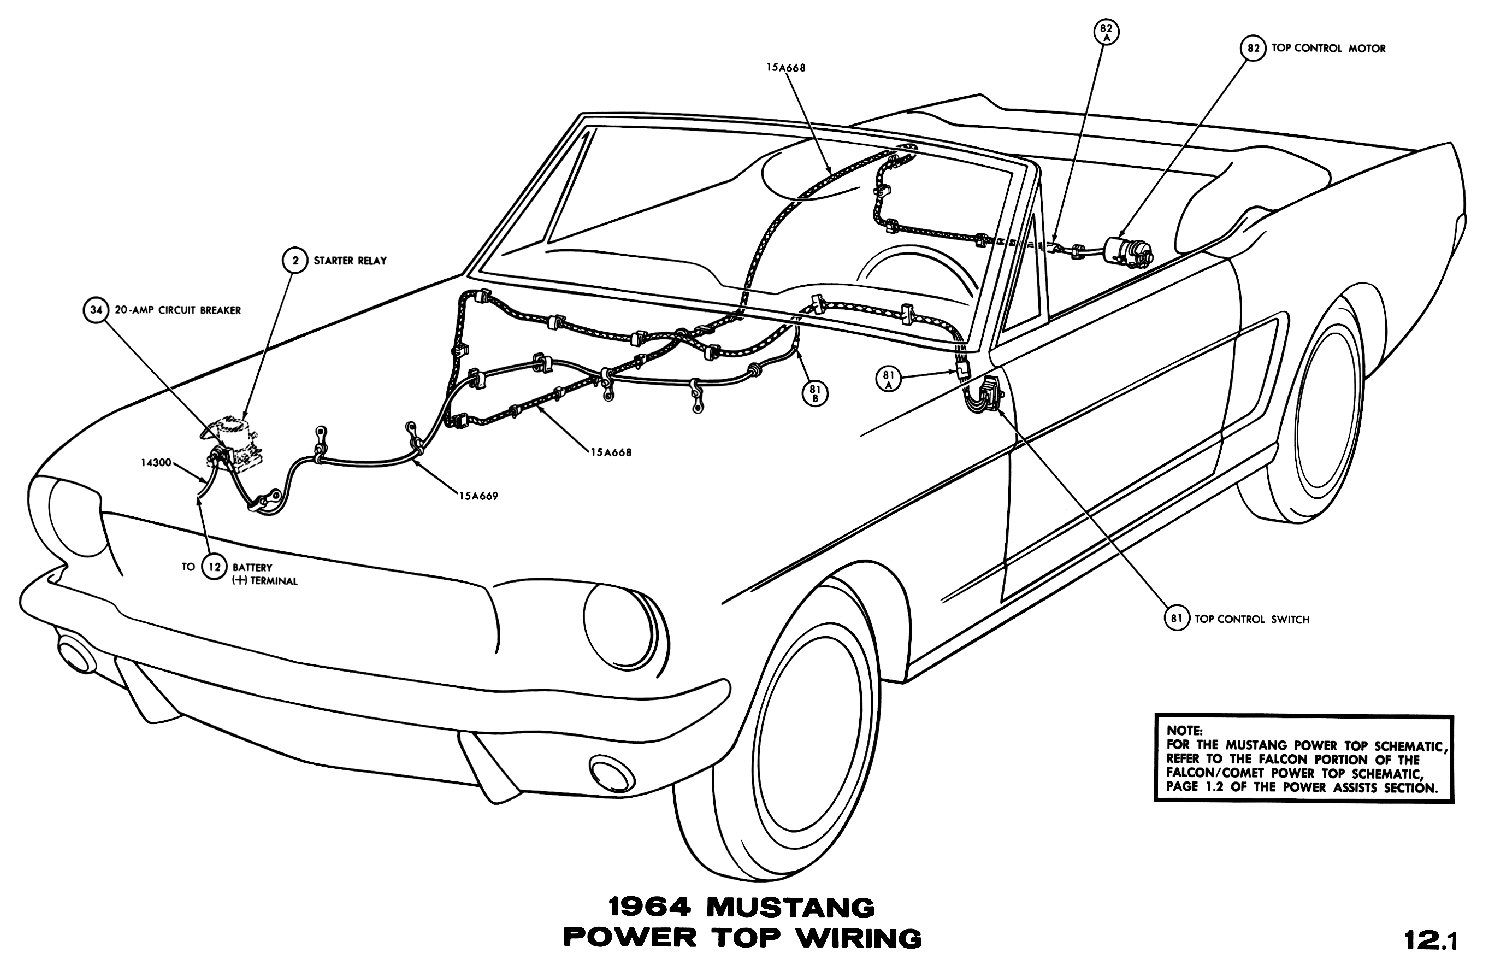 1964 Mustang Wiring Diagrams Average Joe Restoration Ford 3000 Instrument Cluster Diagram Power Top Pictorial Or Schematic